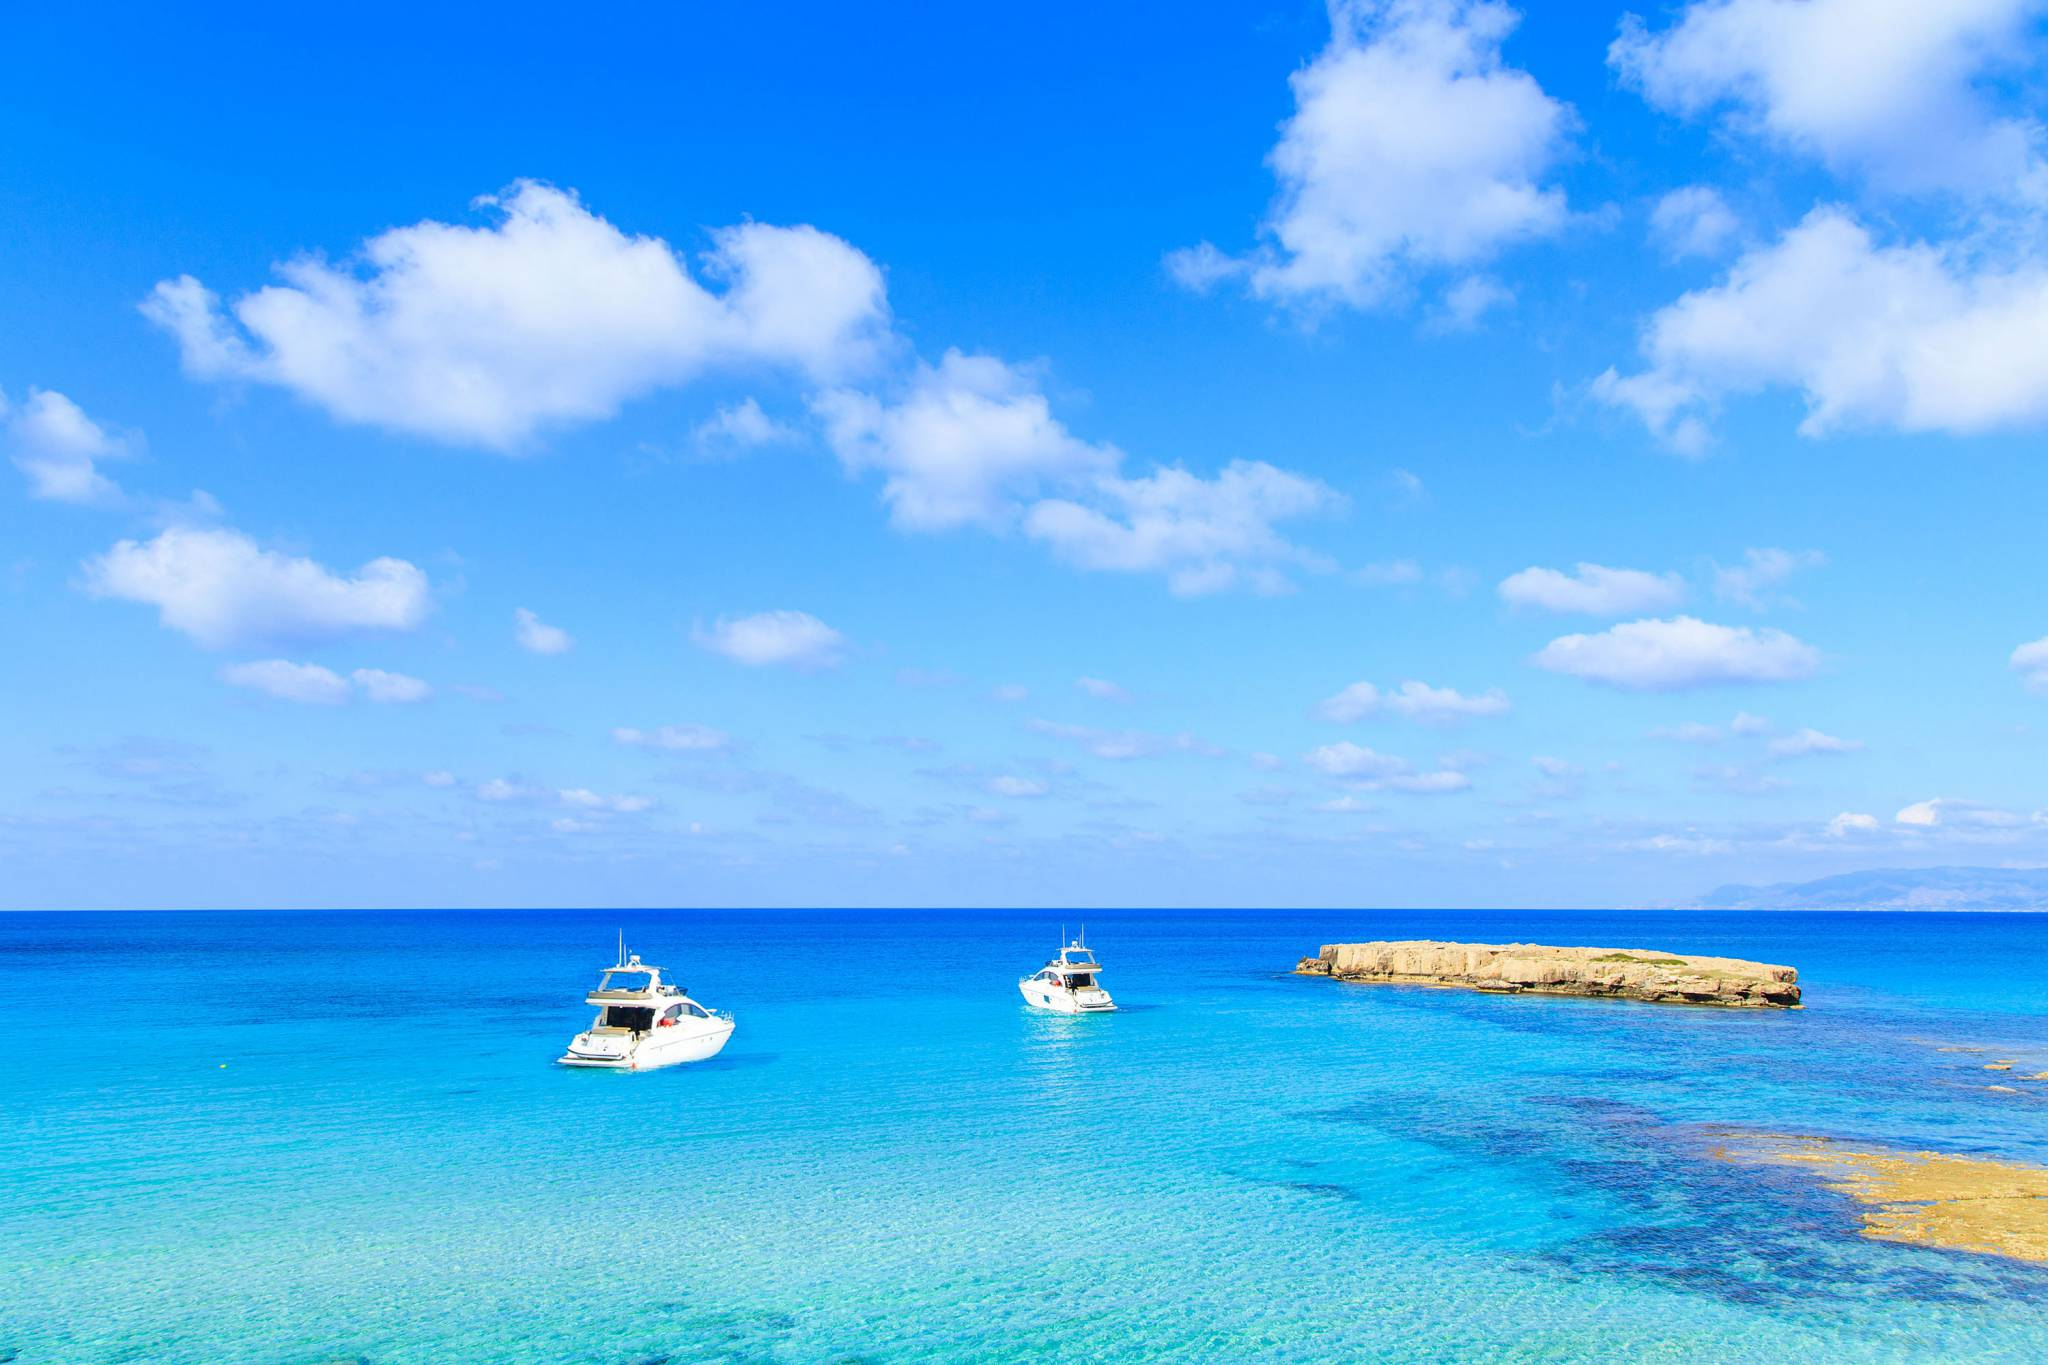 Enjoy Cyprus with eTips Travel Guide